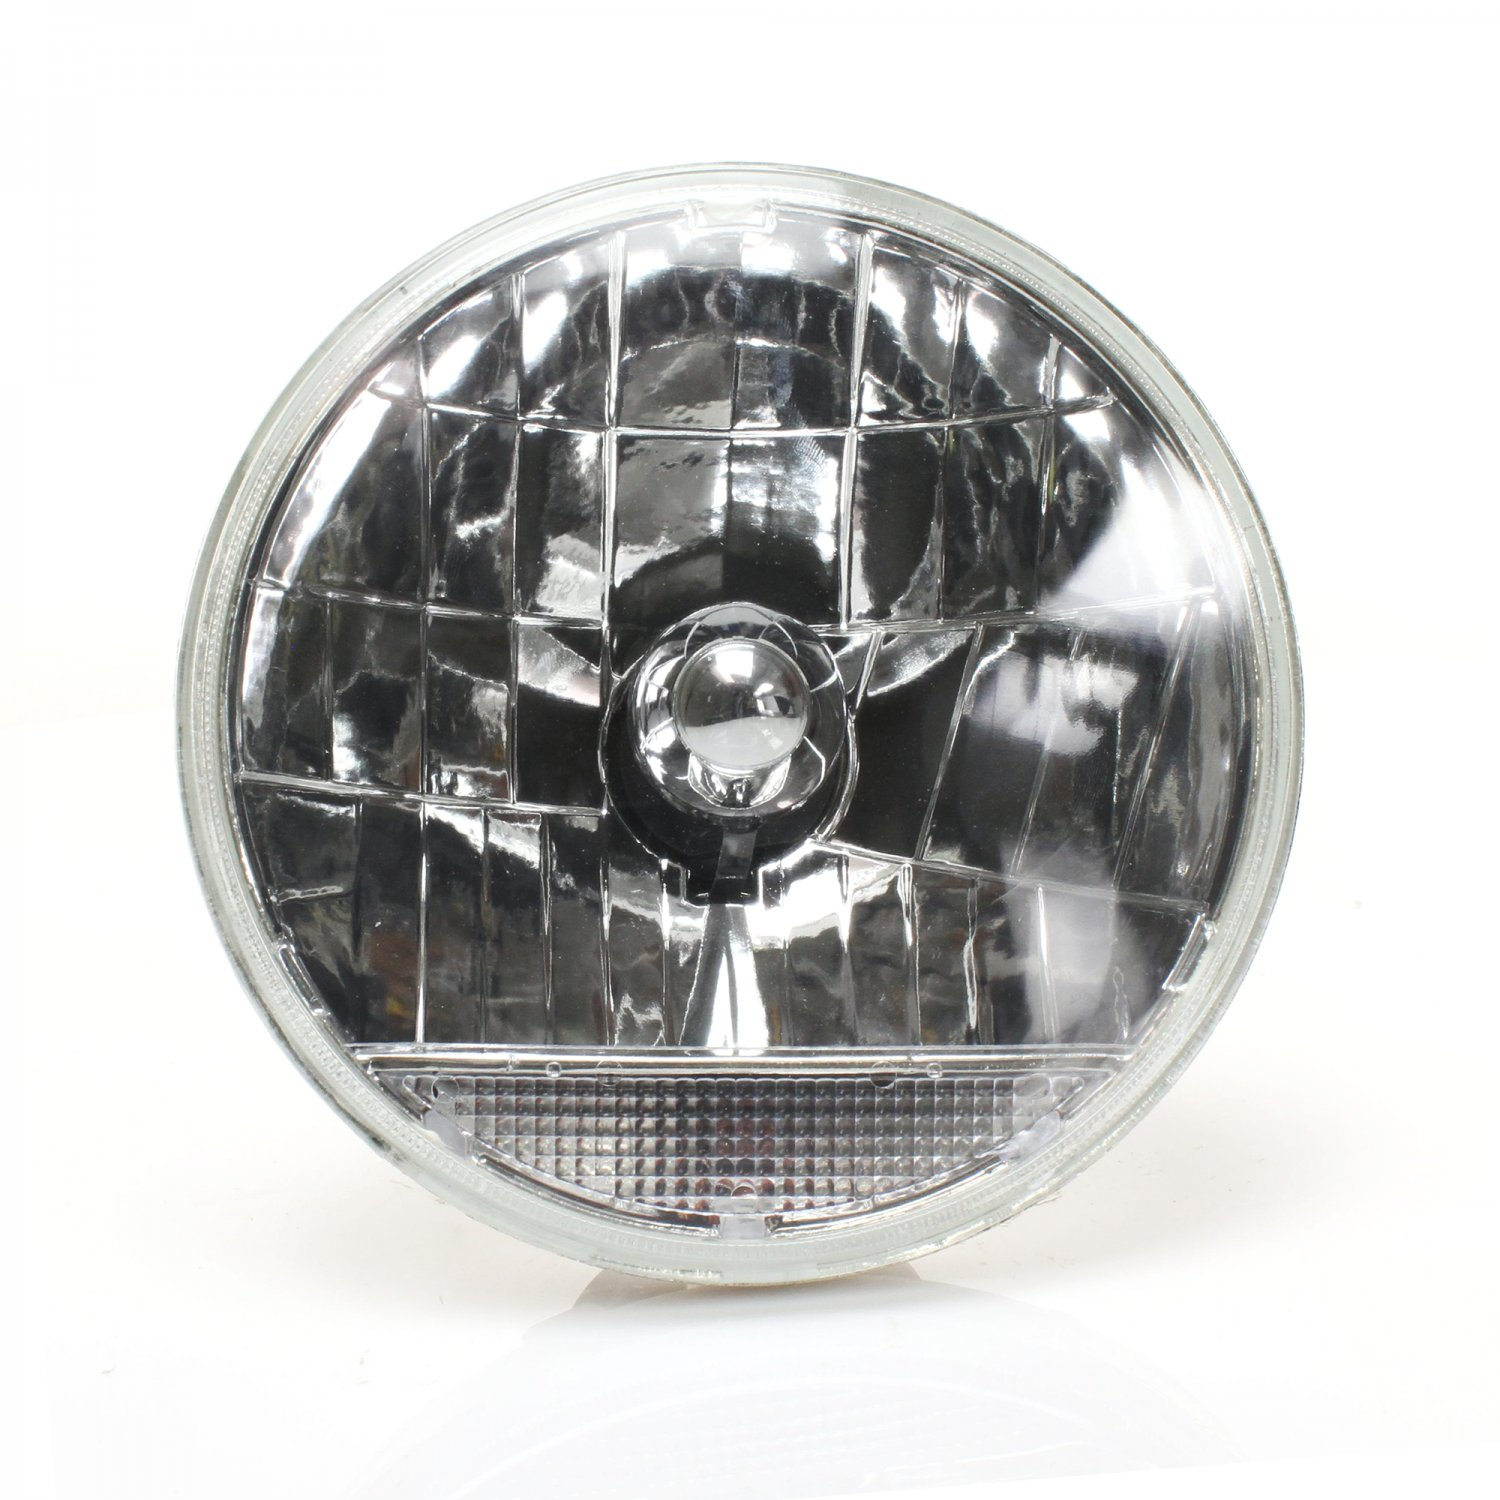 Autoloc 89898 Headlight